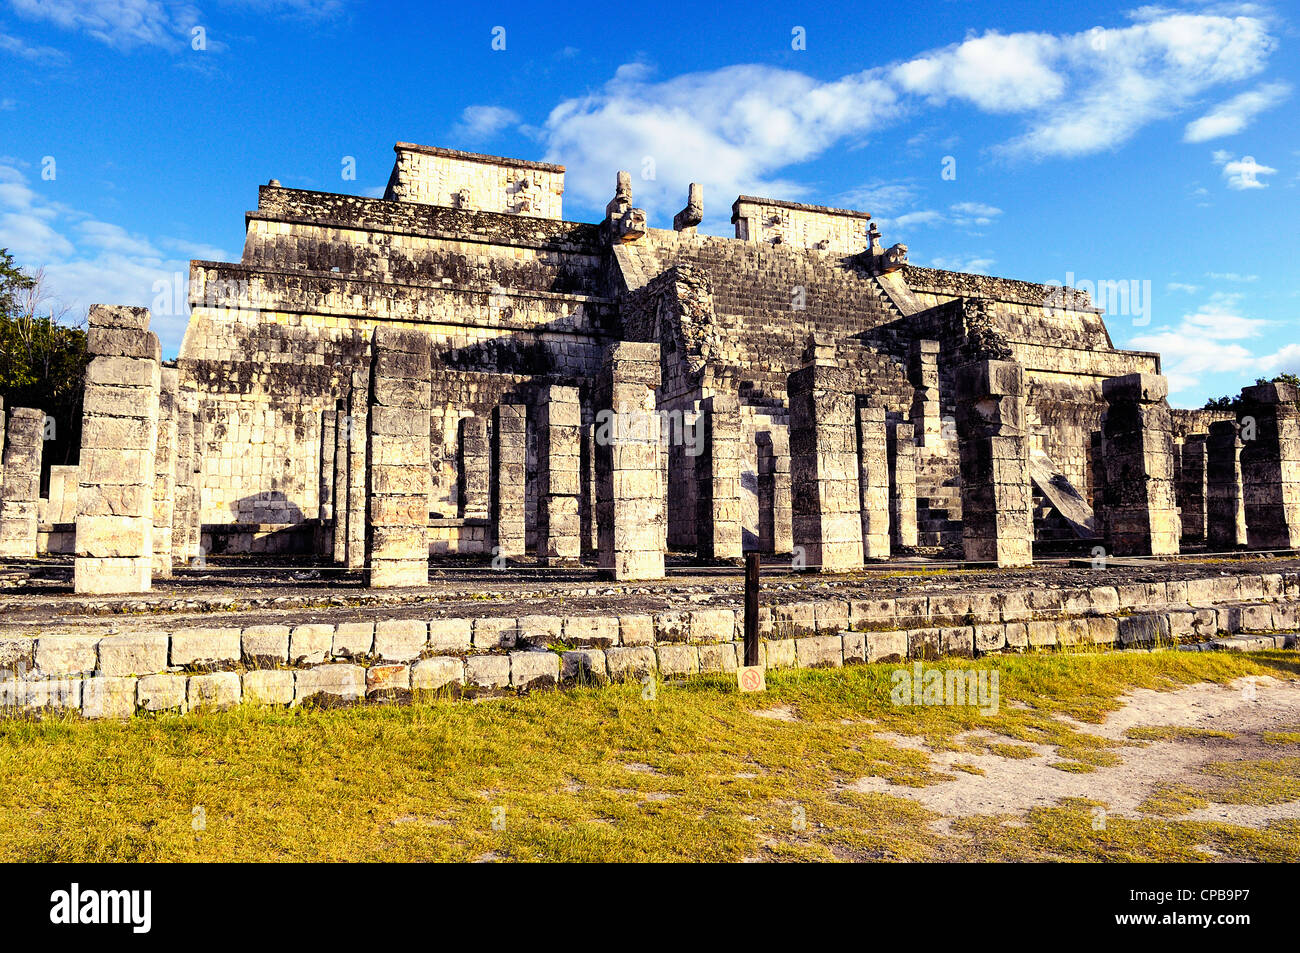 Chichen Itza feathered serpent pyramid, Mexico - Stock Image